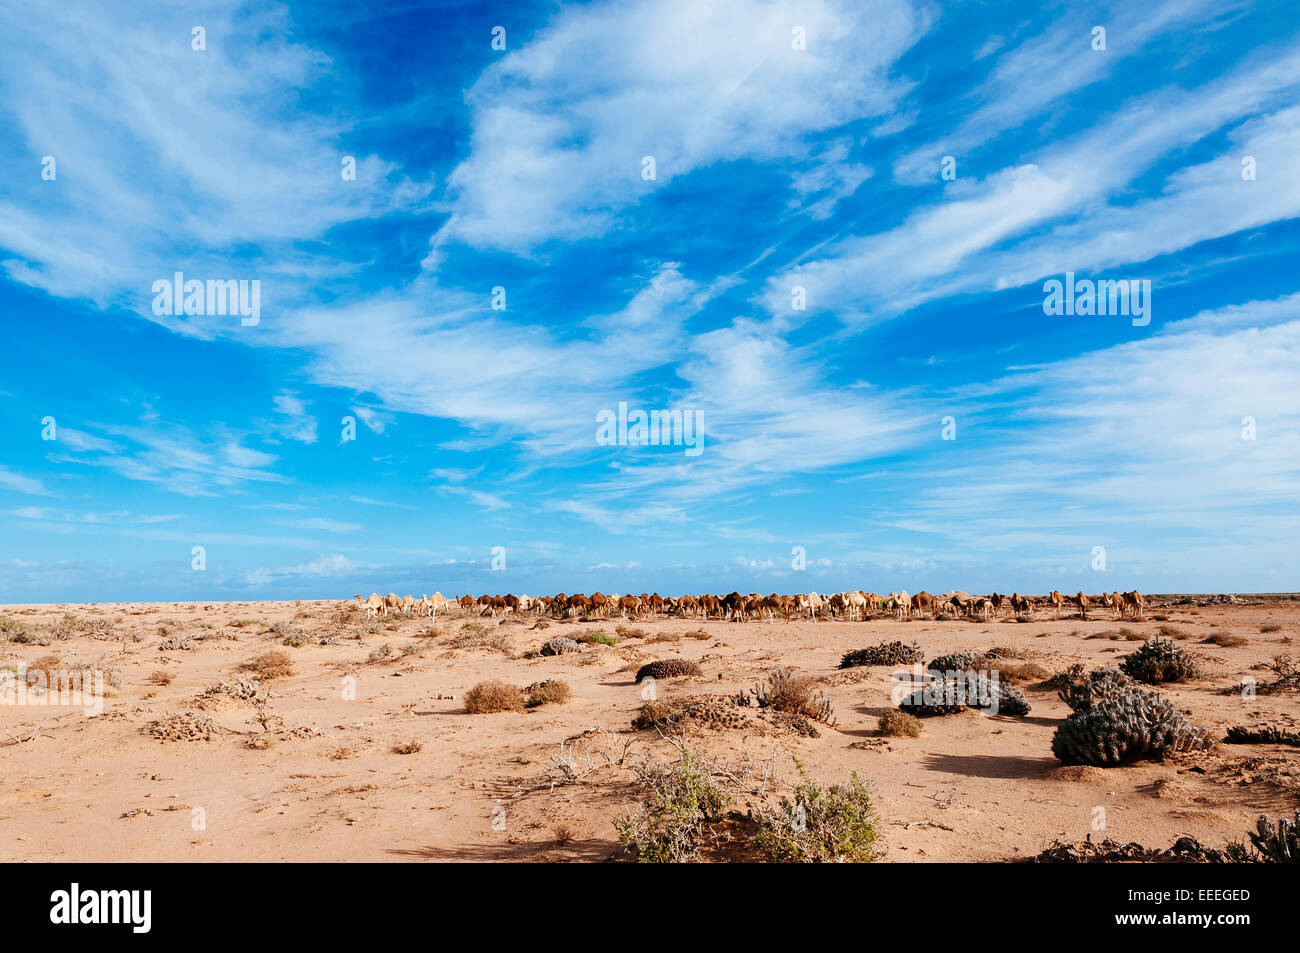 Camels on the hamada desert, Western Sahara, Morocco. - Stock Image